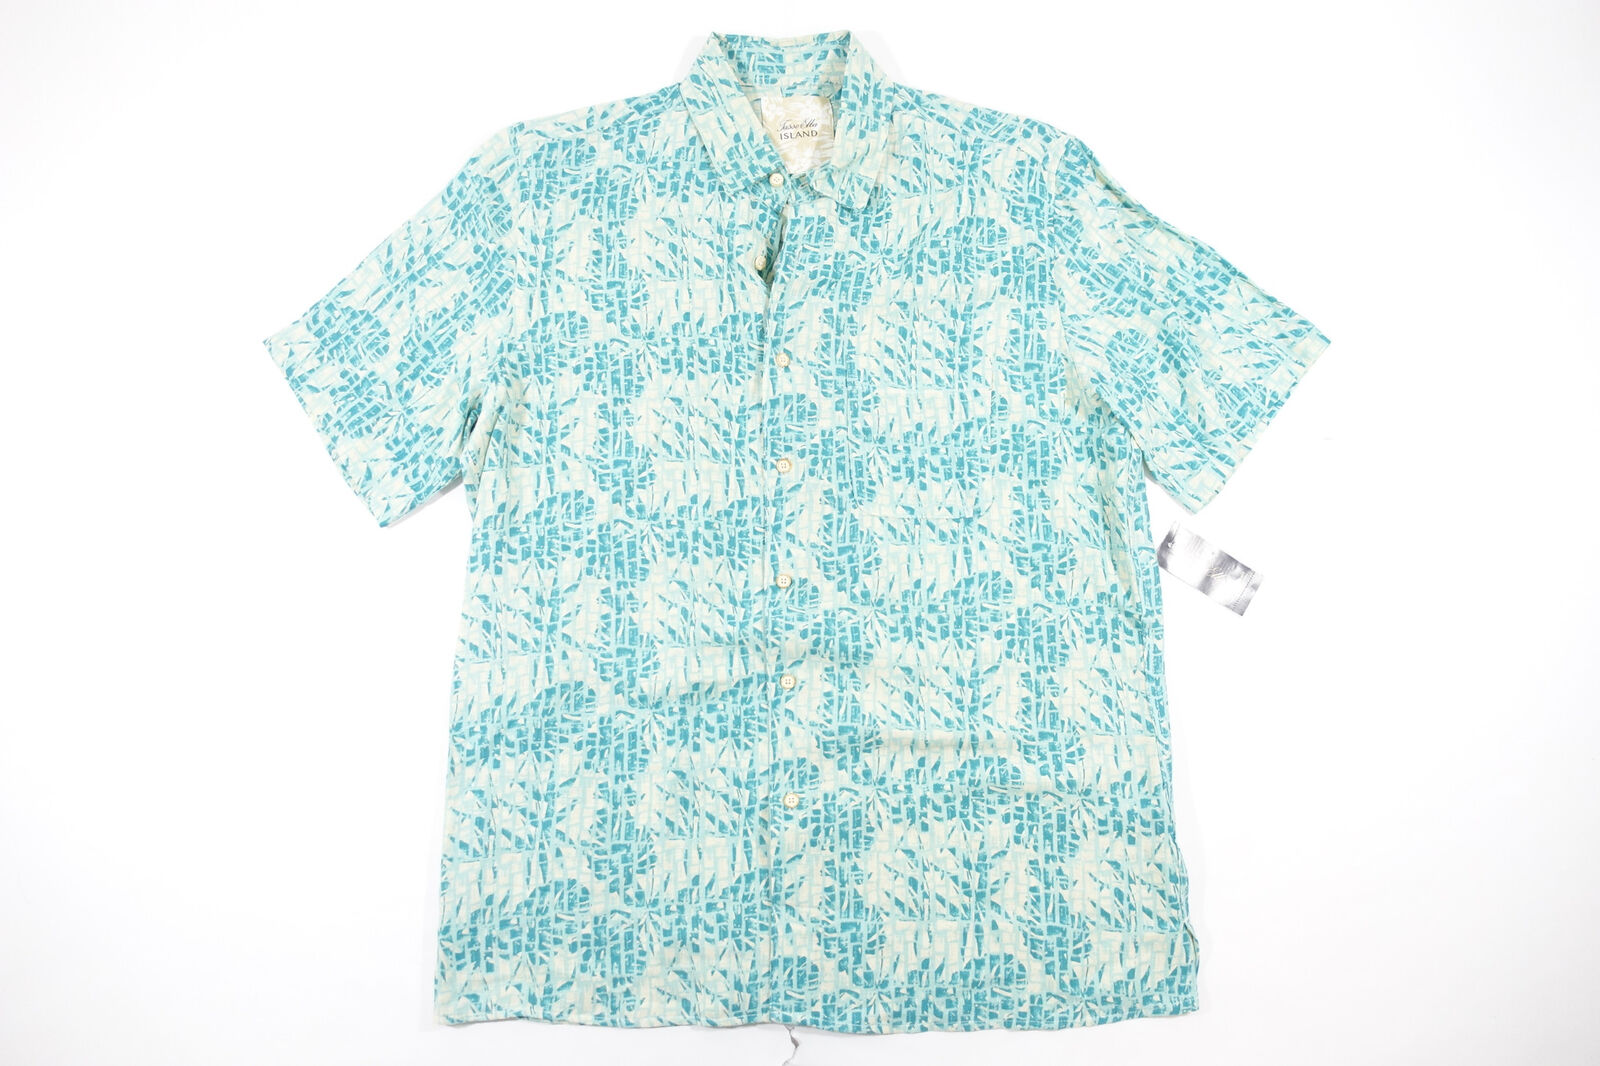 76a75c03ba17 TASSO ELBA ISLAND TROPICAL HAWAIIAN LINEN SHORT SLEEVE BUTTON FRONT SHIRT  SILK nxnqqk1931-Casual Shirts   Tops